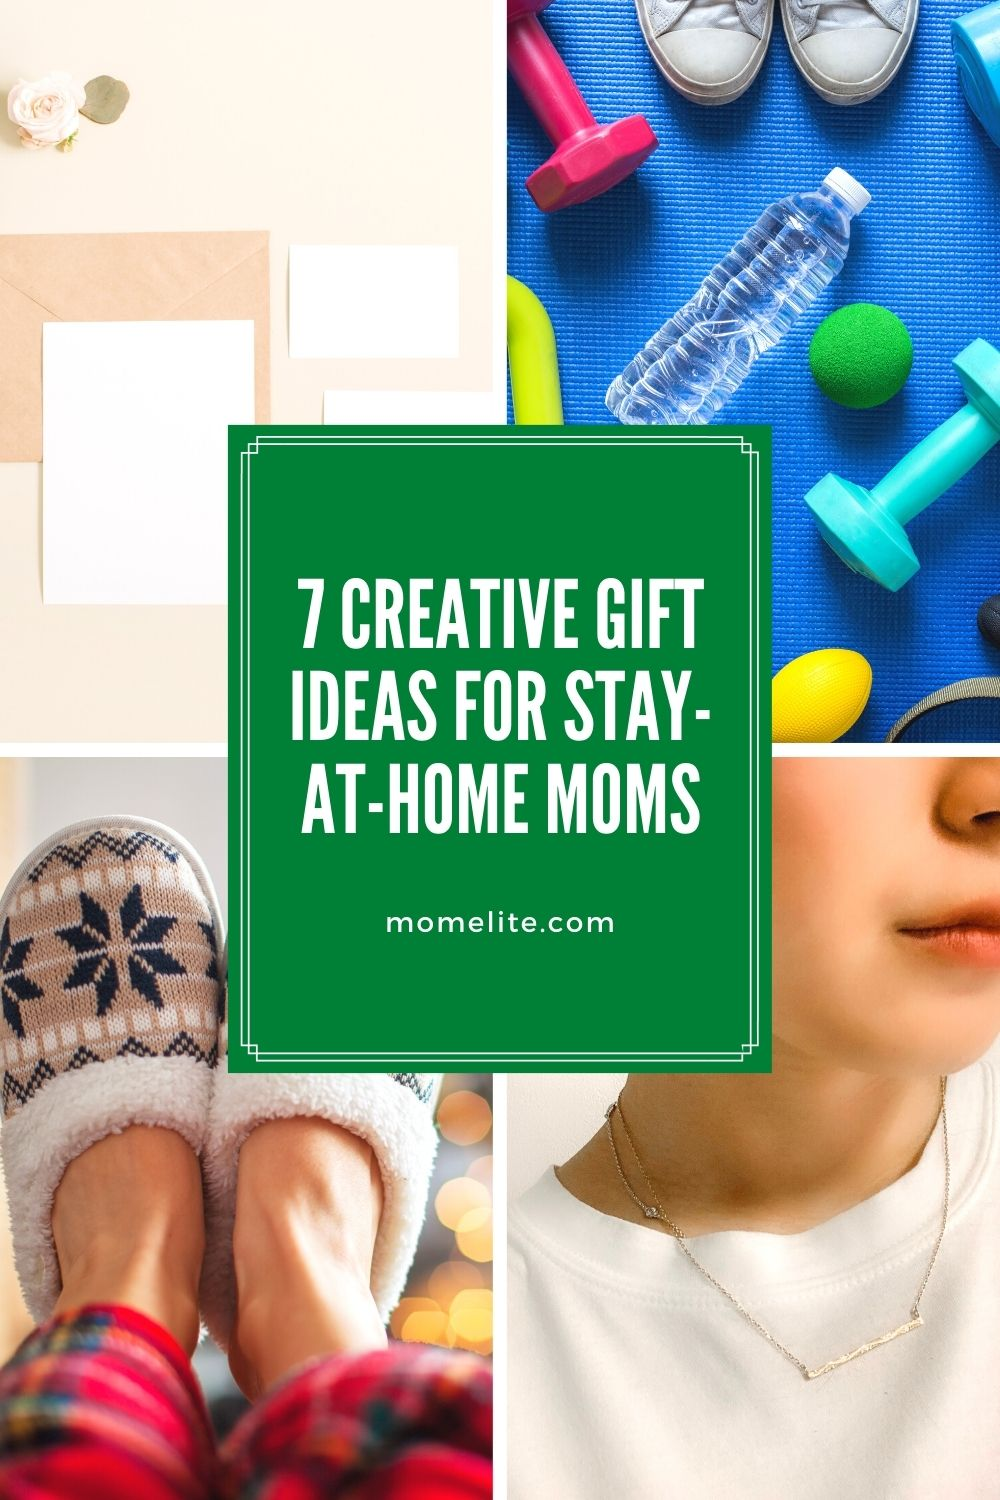 7 Creative Gift Ideas for Stay-at-Home Moms - Mom Elite